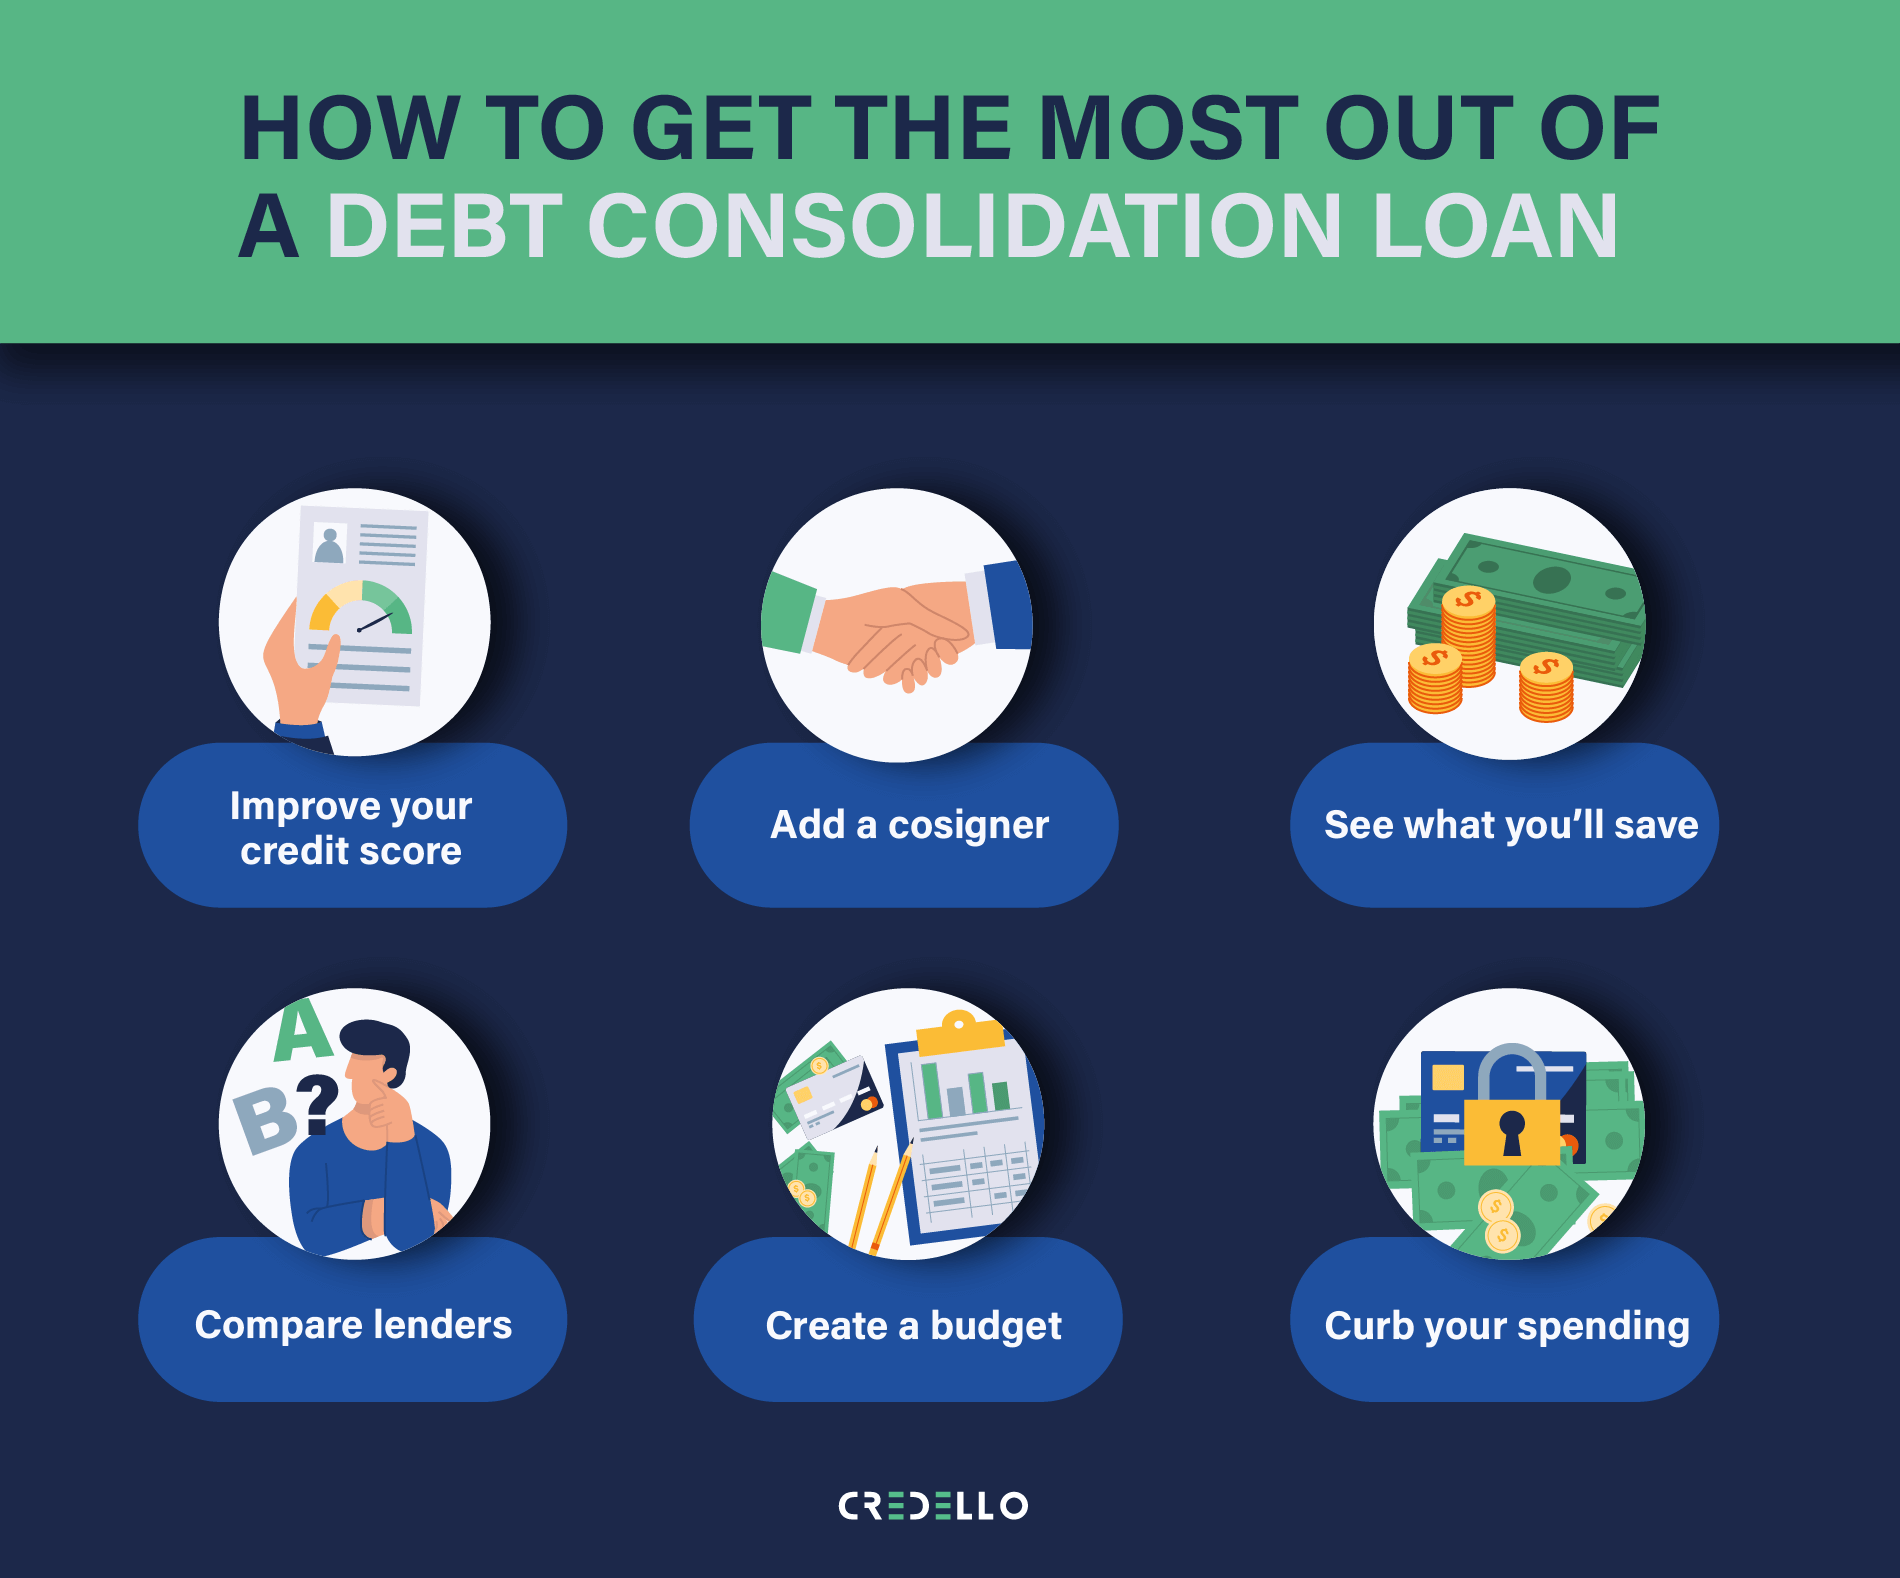 Learn how to get the most of a debt consolidation loan